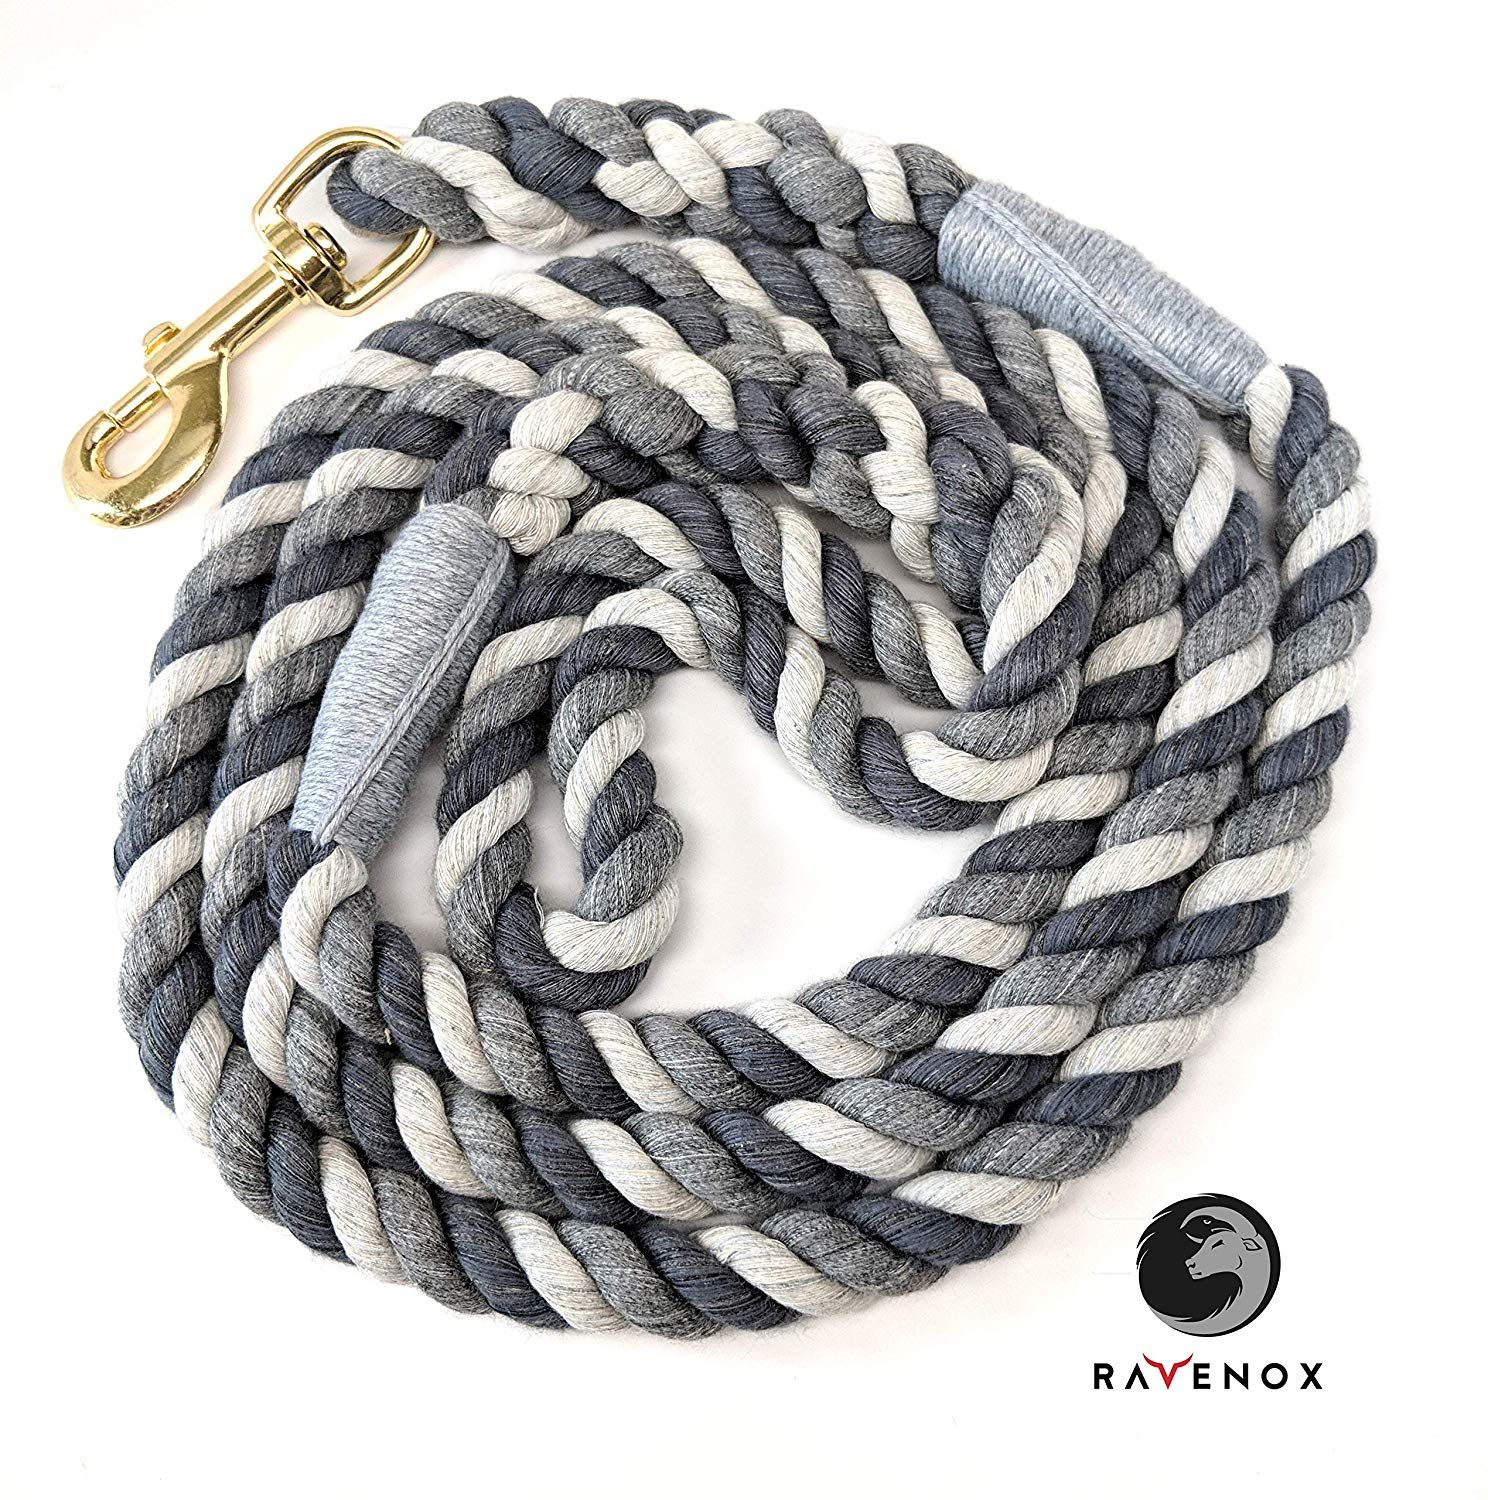 Amazon Com Ravenox Cotton Rope Leash Lead 1 2 Inch X 6 Foot For Medium Or Large Dogs Pets Grey Handmade In The Usa W Rope Dog Rope Dog Leash Dog Leash